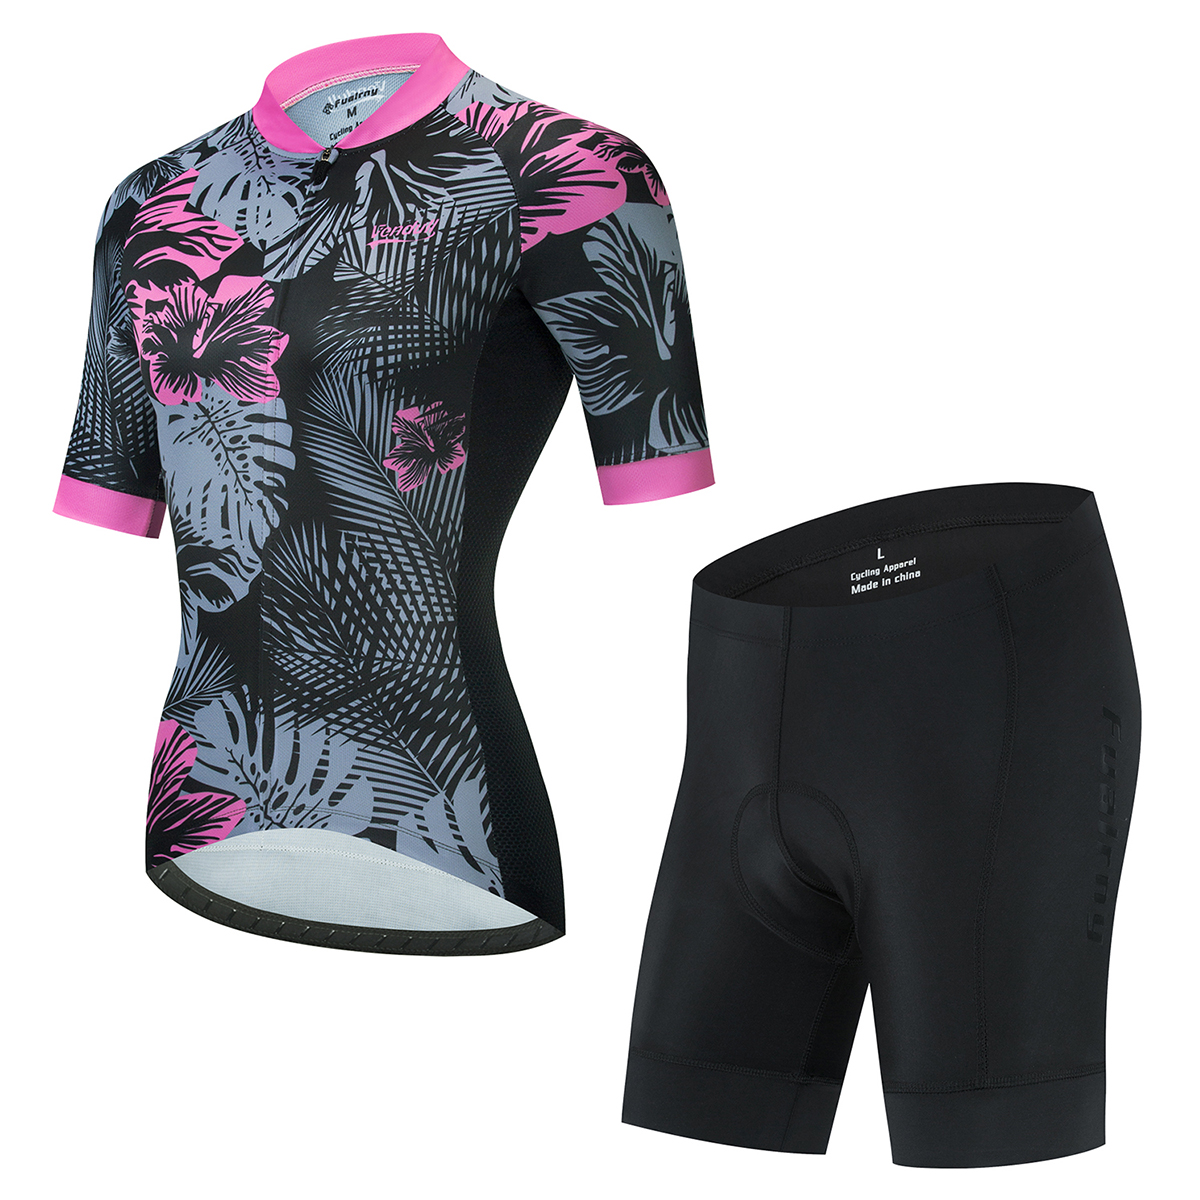 2021 Summer New VENDULL Women Cycling Jerseys Set Mountian Bike Clothing Racing Bicycle Clothes Ropa Ciclismo Girls Cycling Set